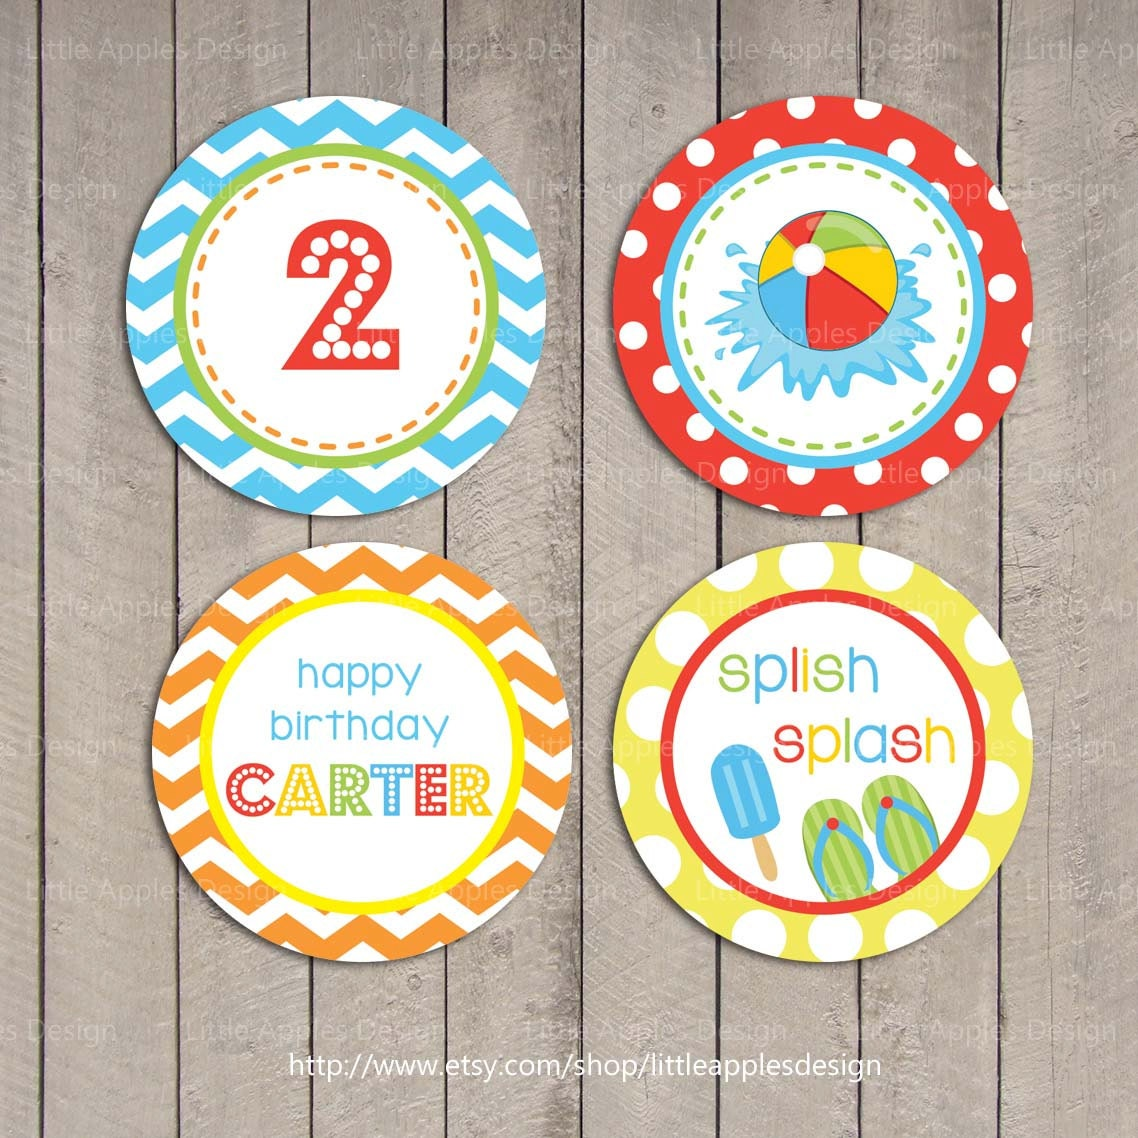 Pool Party Cupcake Toppers Para Niños / Cupcake Toppers De